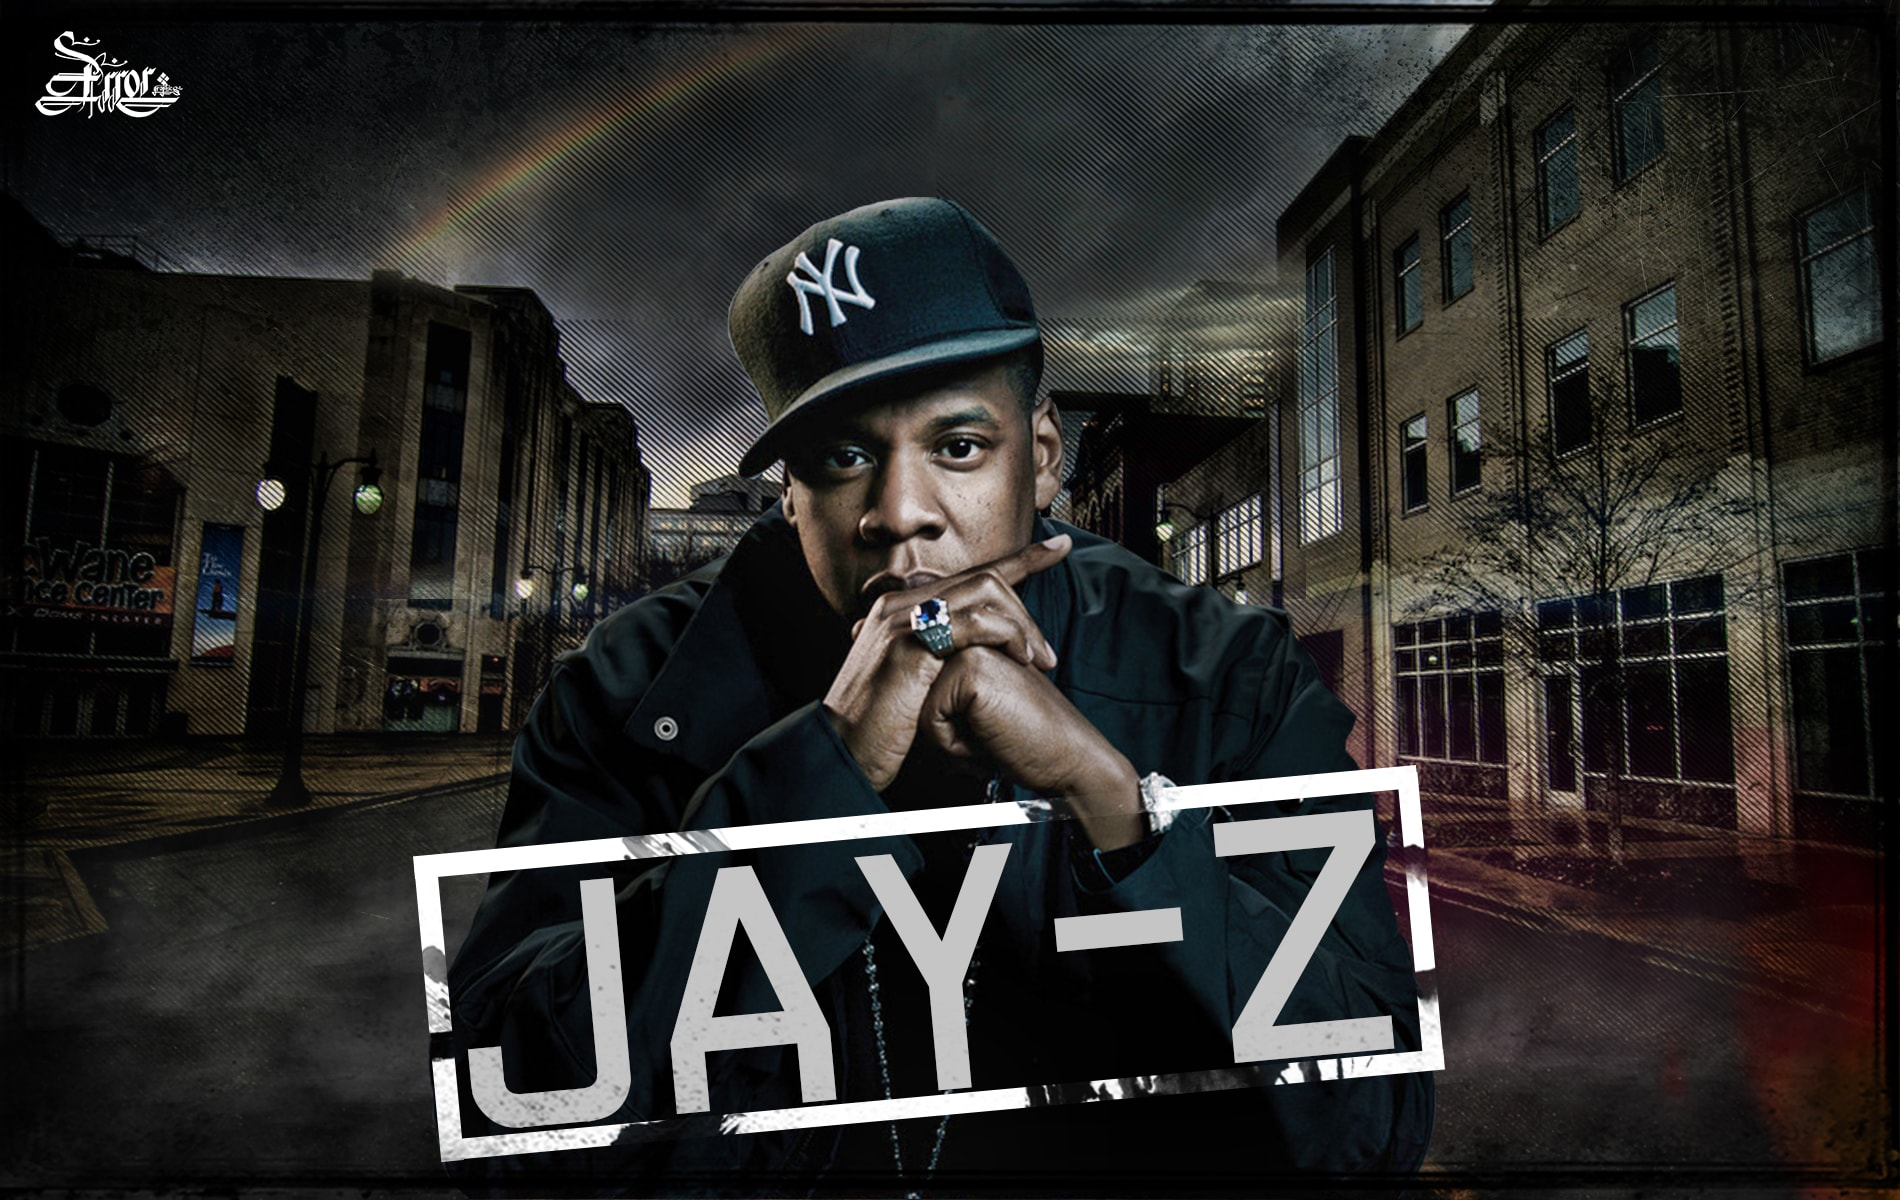 Jay z hd desktop wallpapers 7wallpapers jay z wallpapers hd jay z wallpaper malvernweather Image collections